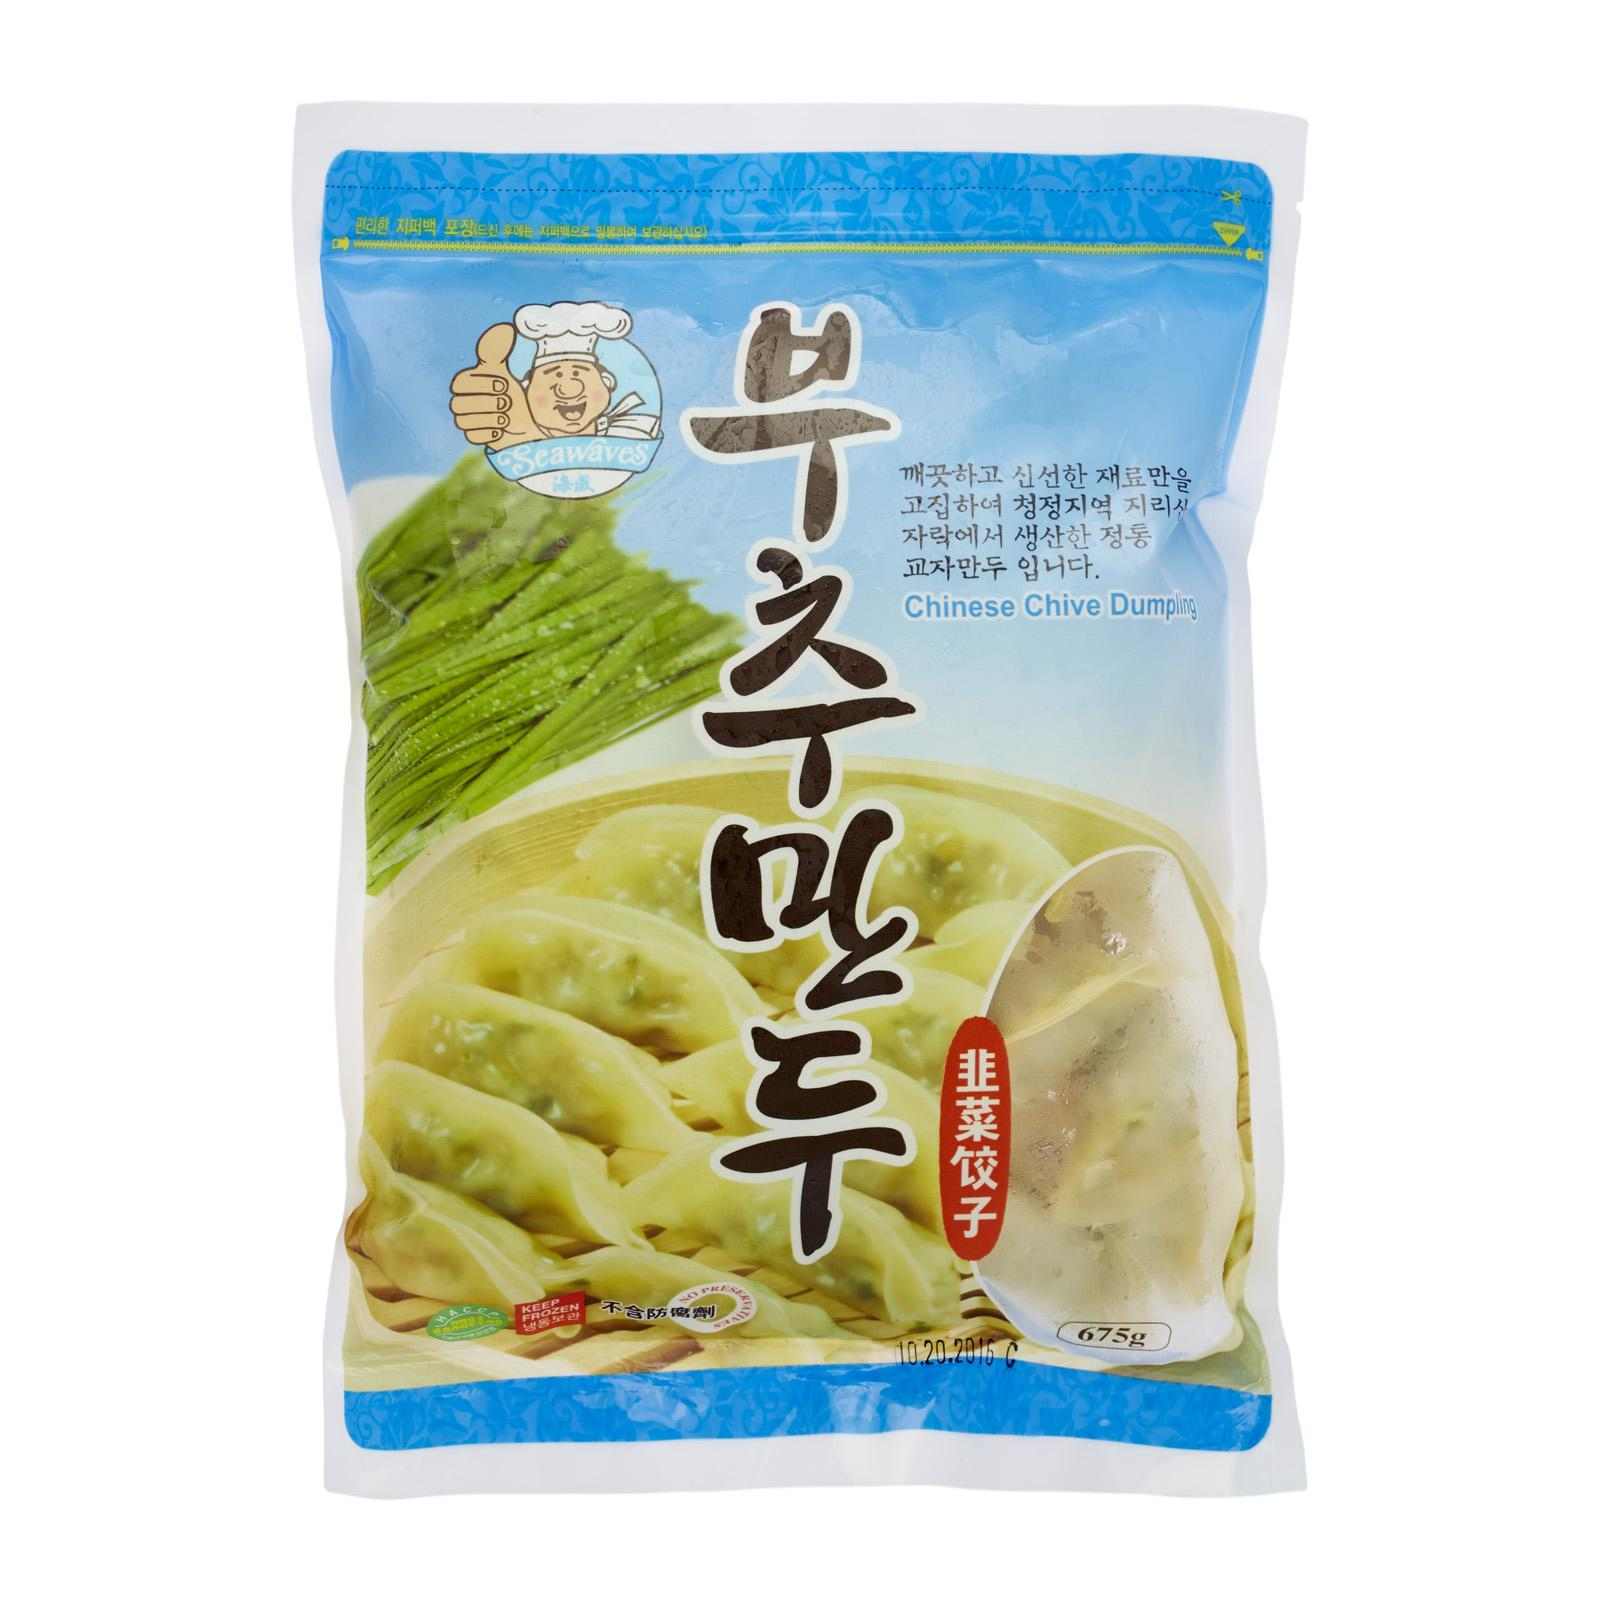 Seawaves Chinese Chive Dumpling - Frozen